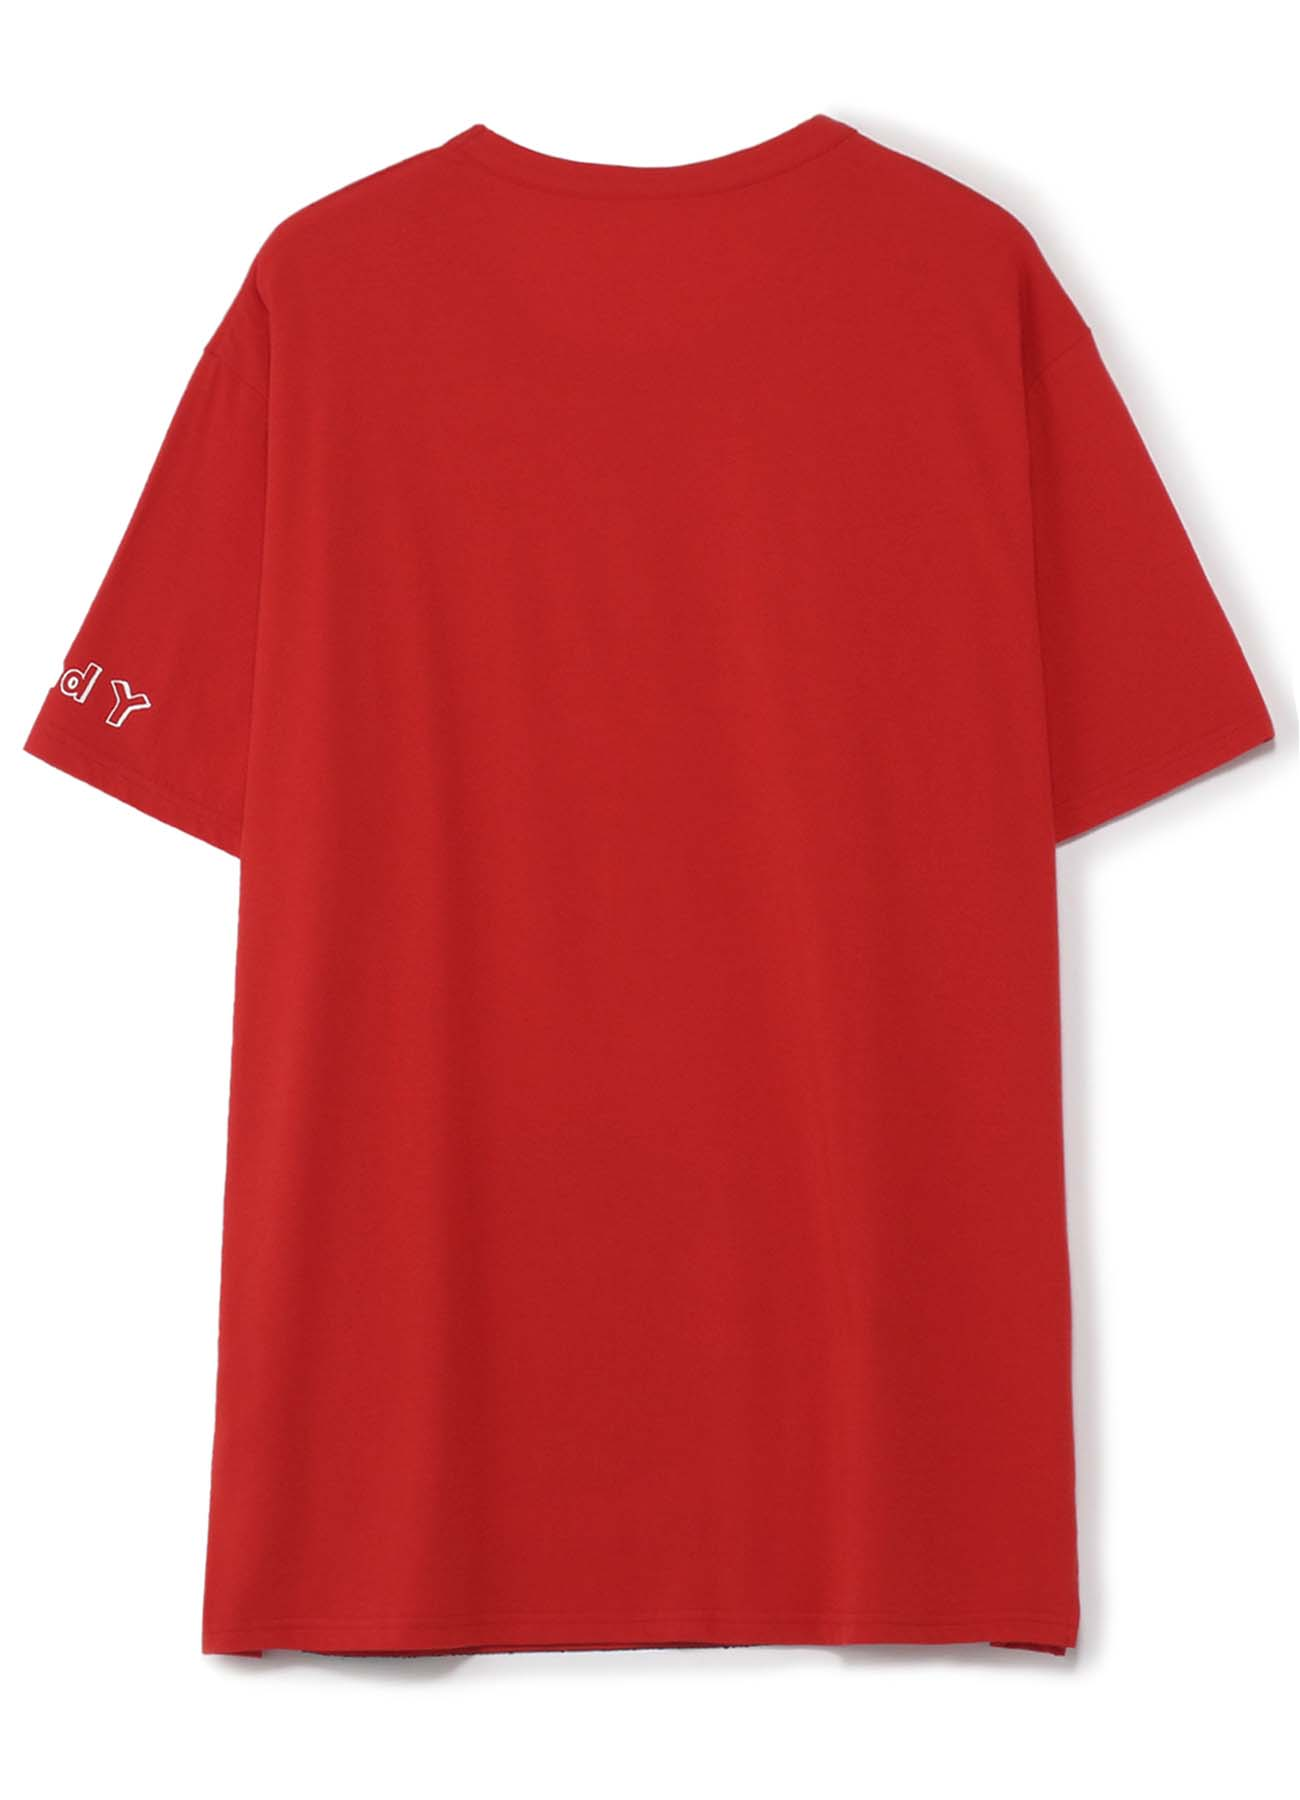 【Ground Y×Mai Fukagawa Collection】30/-Combed Cotton Jersey Cut Sew [カラス]